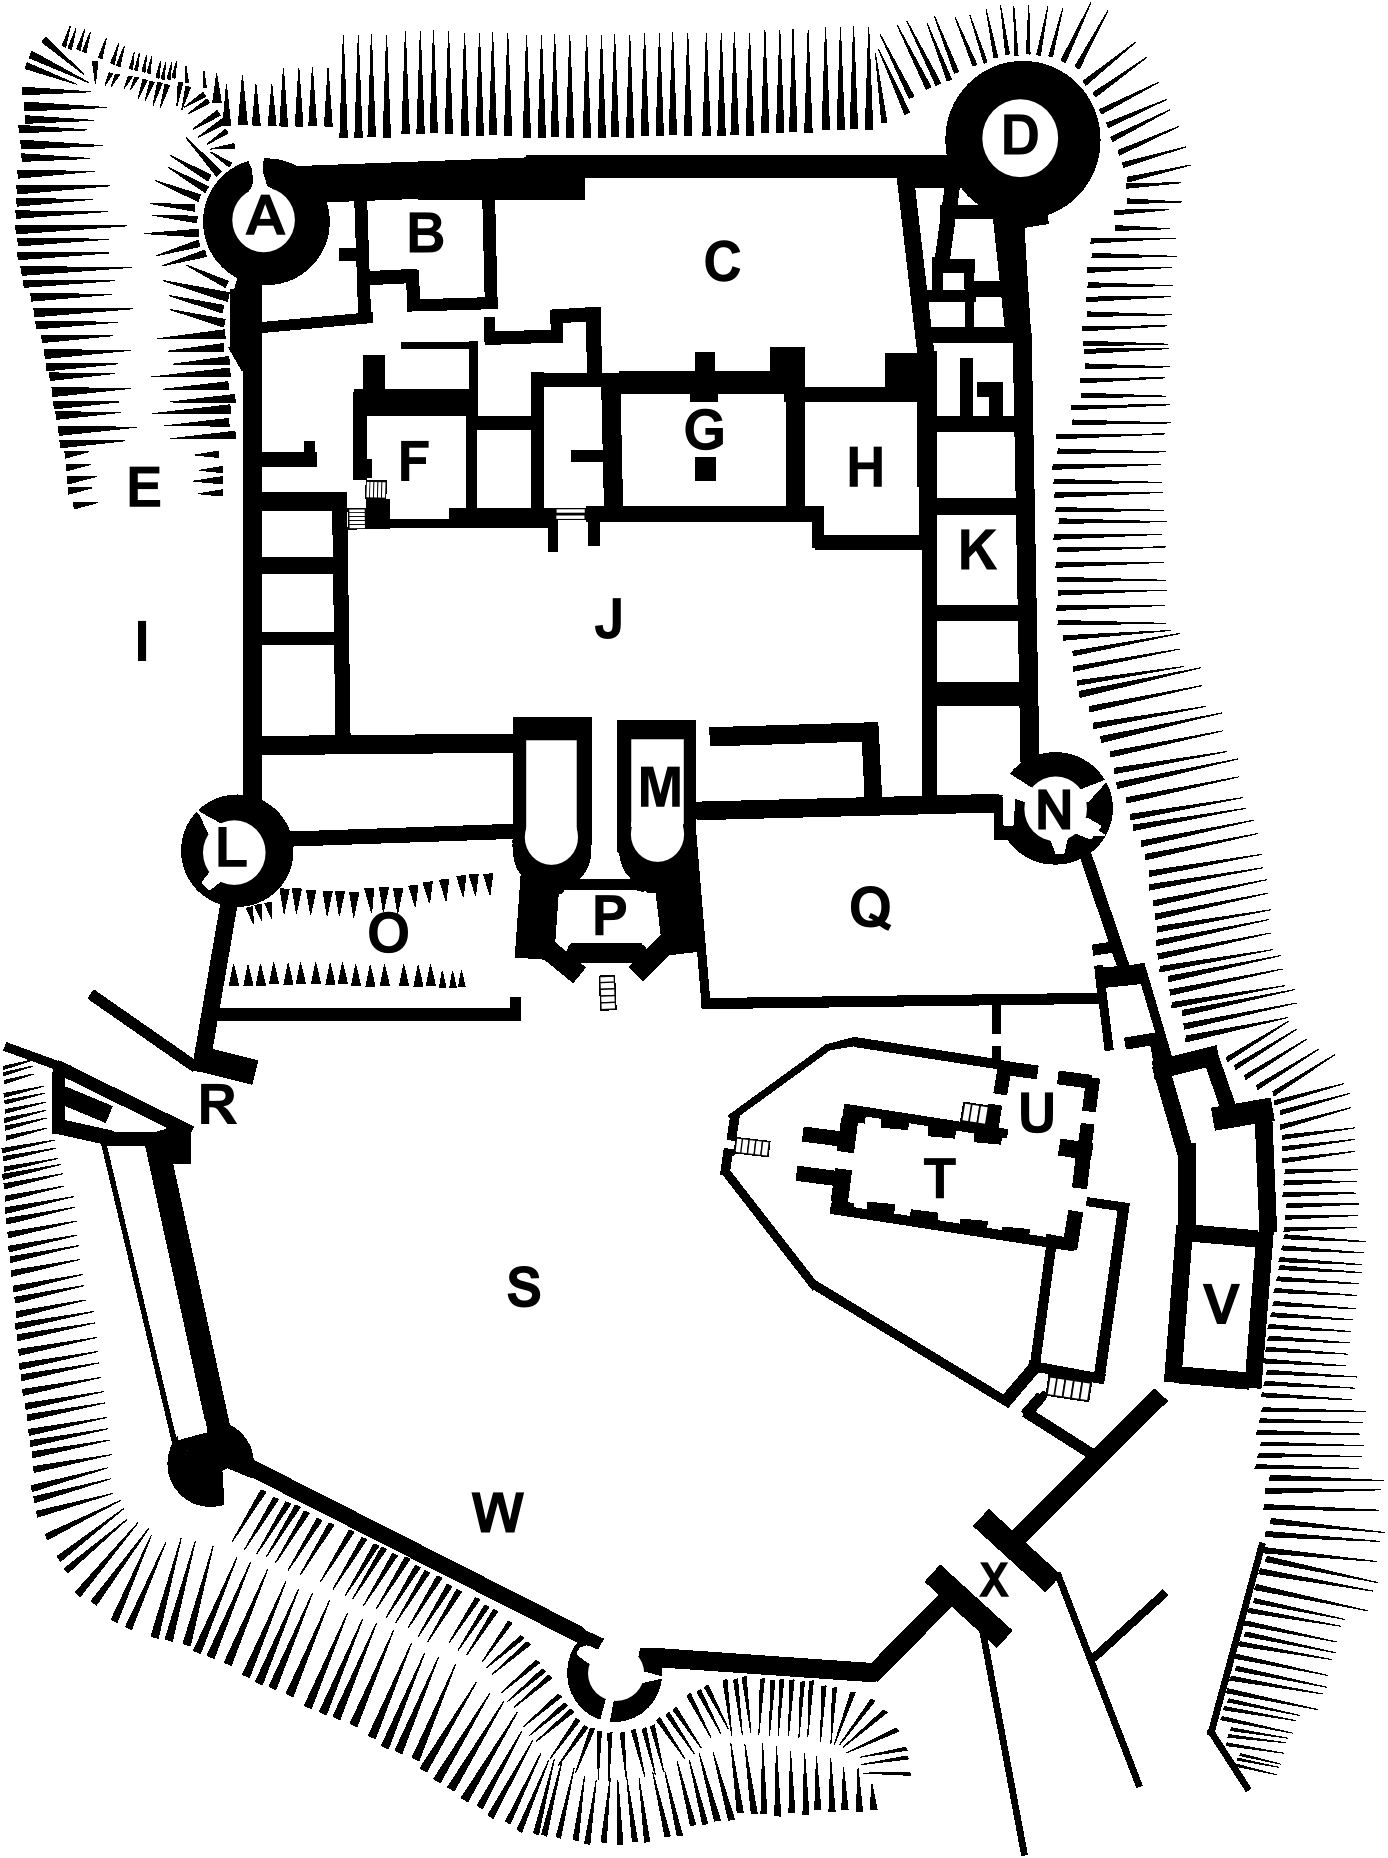 Farleigh hungerford castle military wiki fandom for Castle floor plan generator